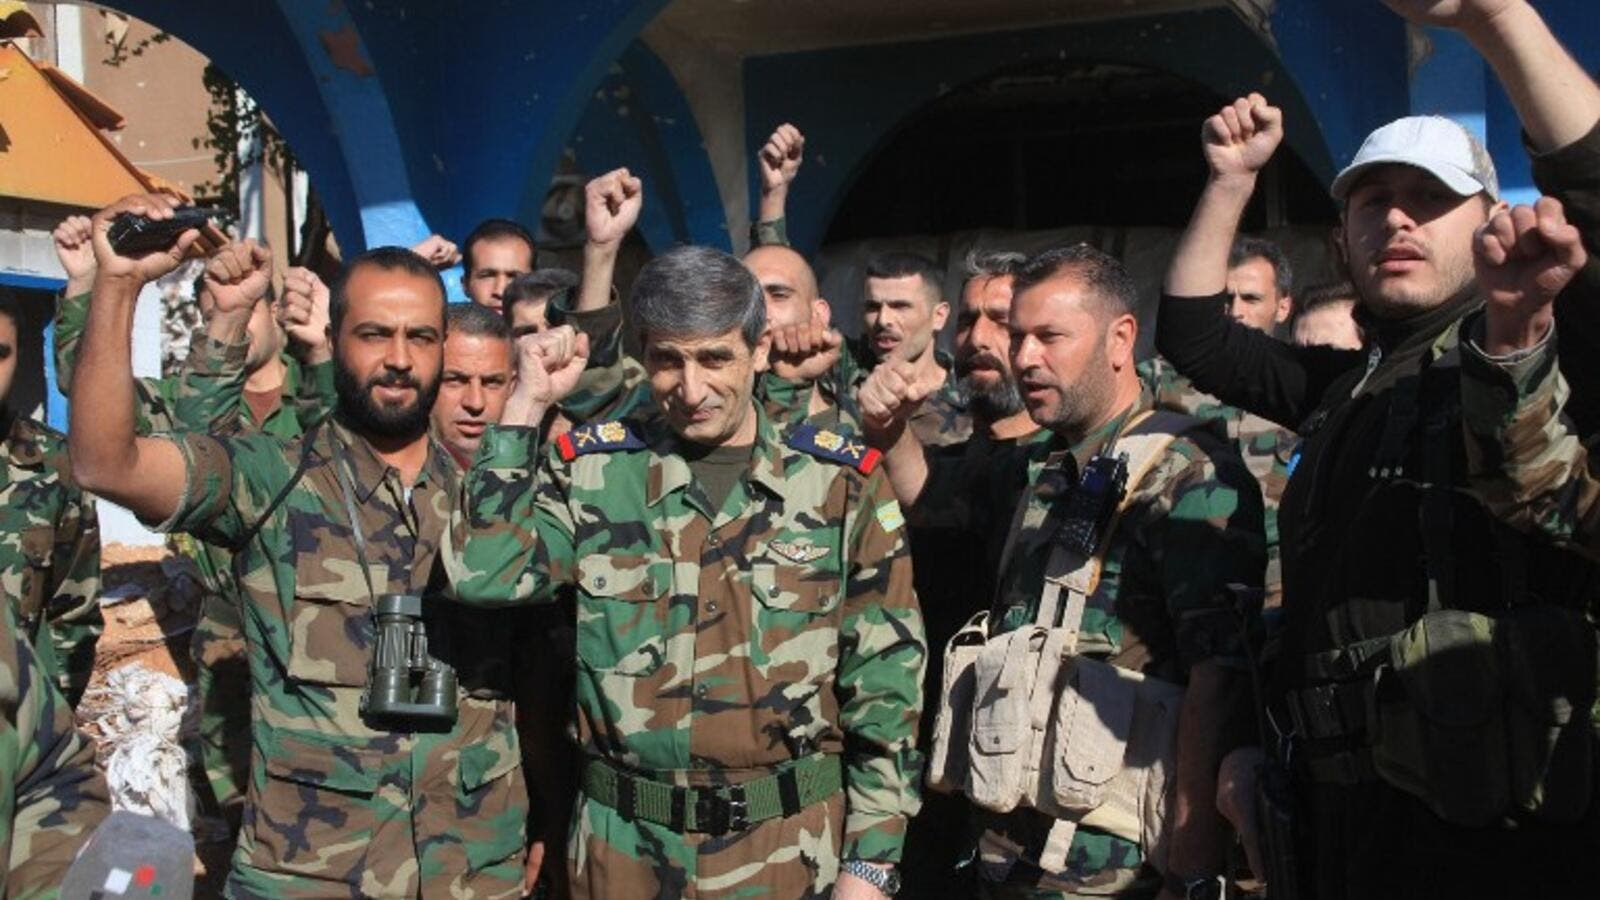 Members of the Syrian Army celebrate reclaiming the Kweires airbase earlier this week, shortly before recapturing Al-Hader, also in Aleppo. (AFP/George Ourfalian)